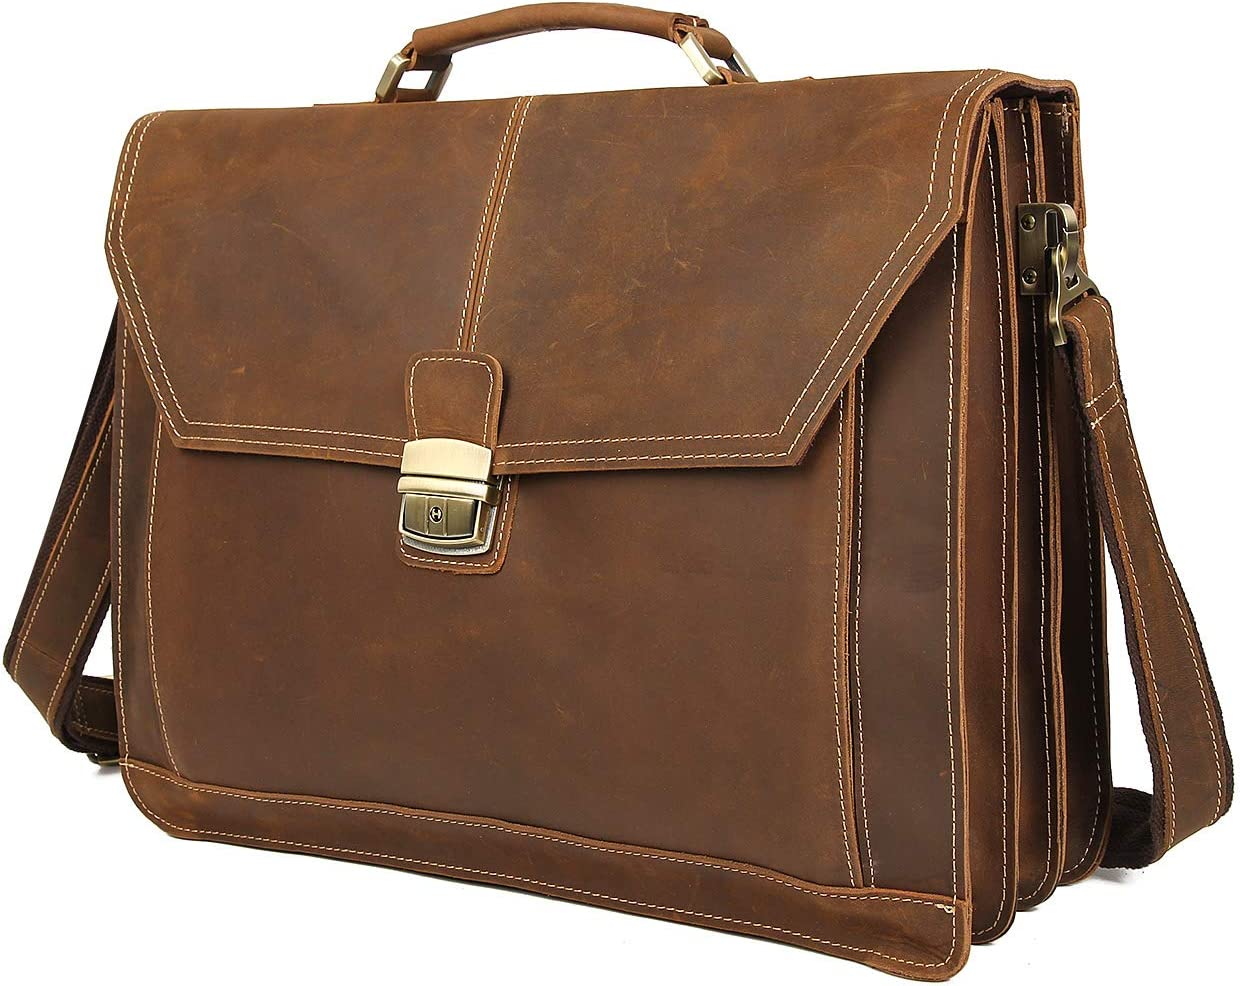 Texbo Men s Crazy Horse Leather Briefcase Messenger Bag Fit 16.5 Inch Laptop Tote